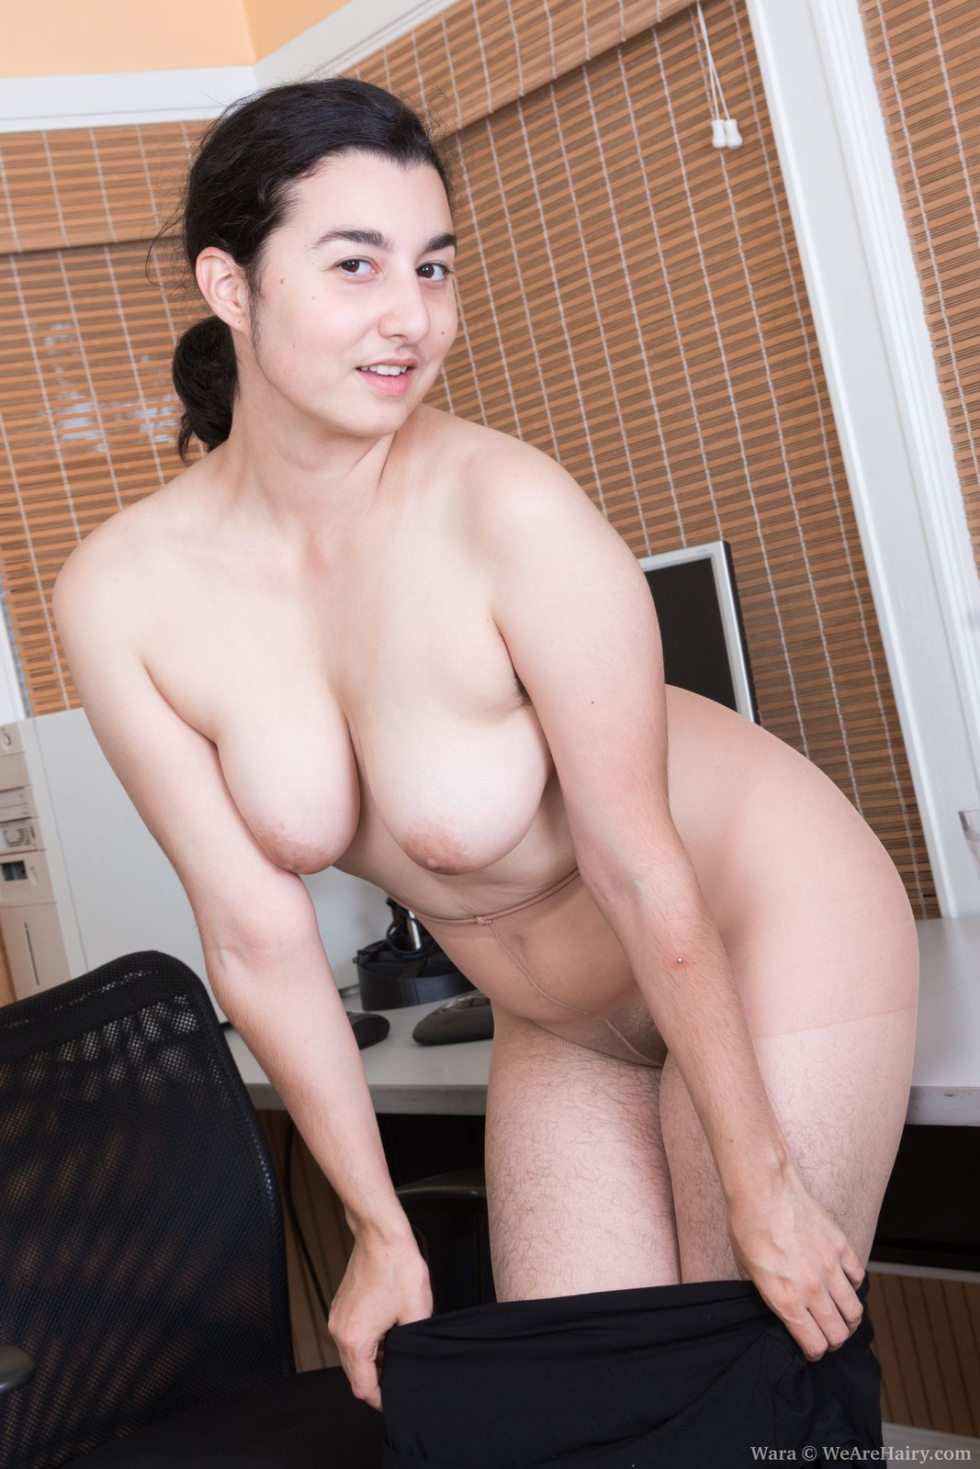 Wara strips naked to show her hairy body off today 8